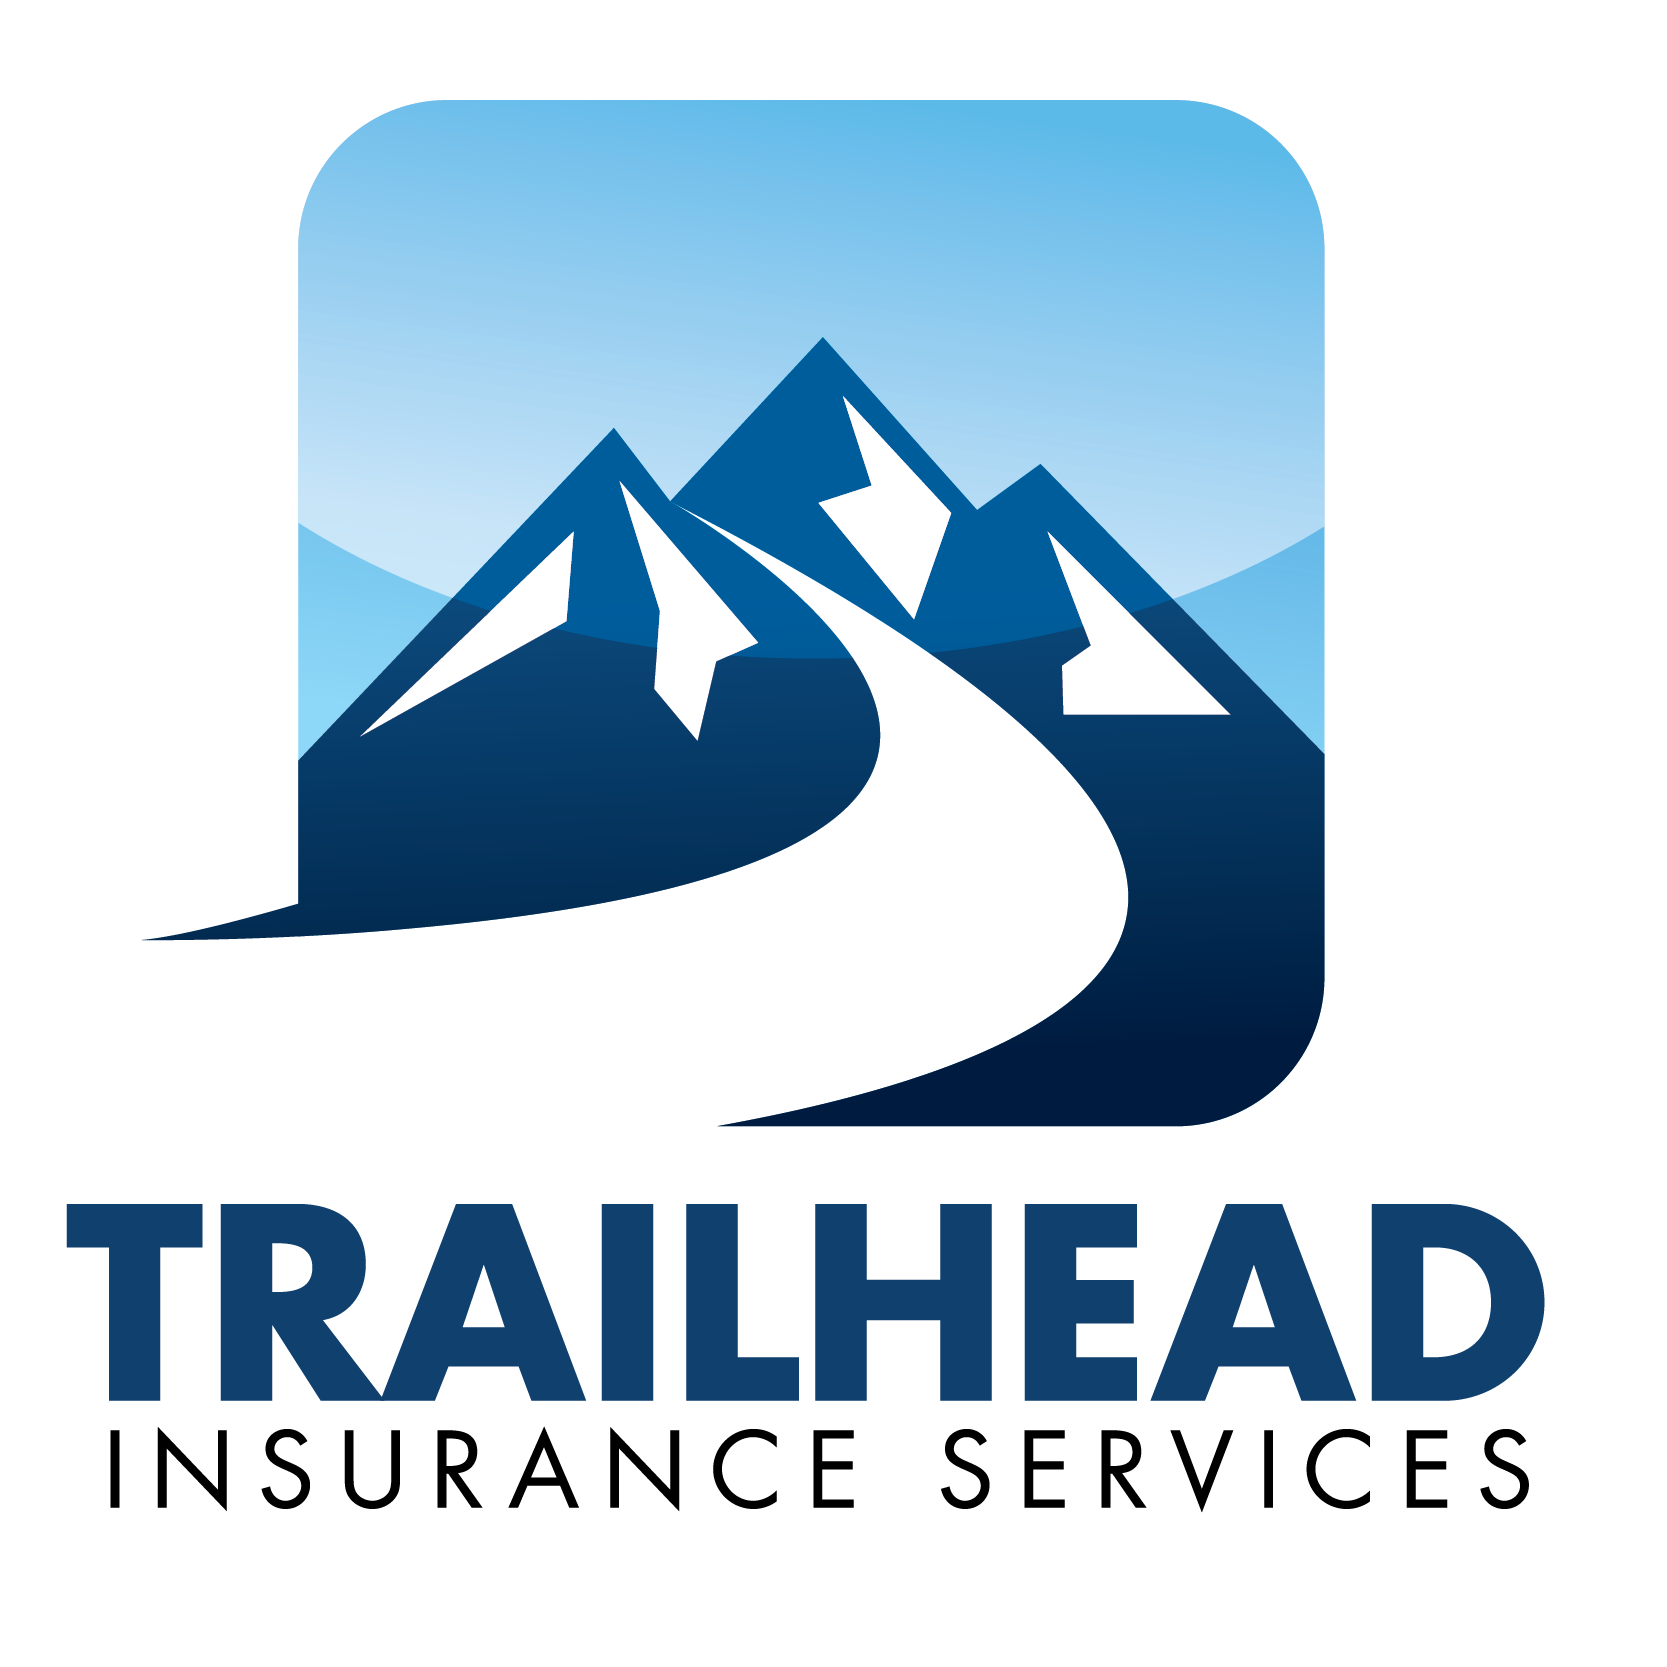 Trailhead Insurance Services, LLC